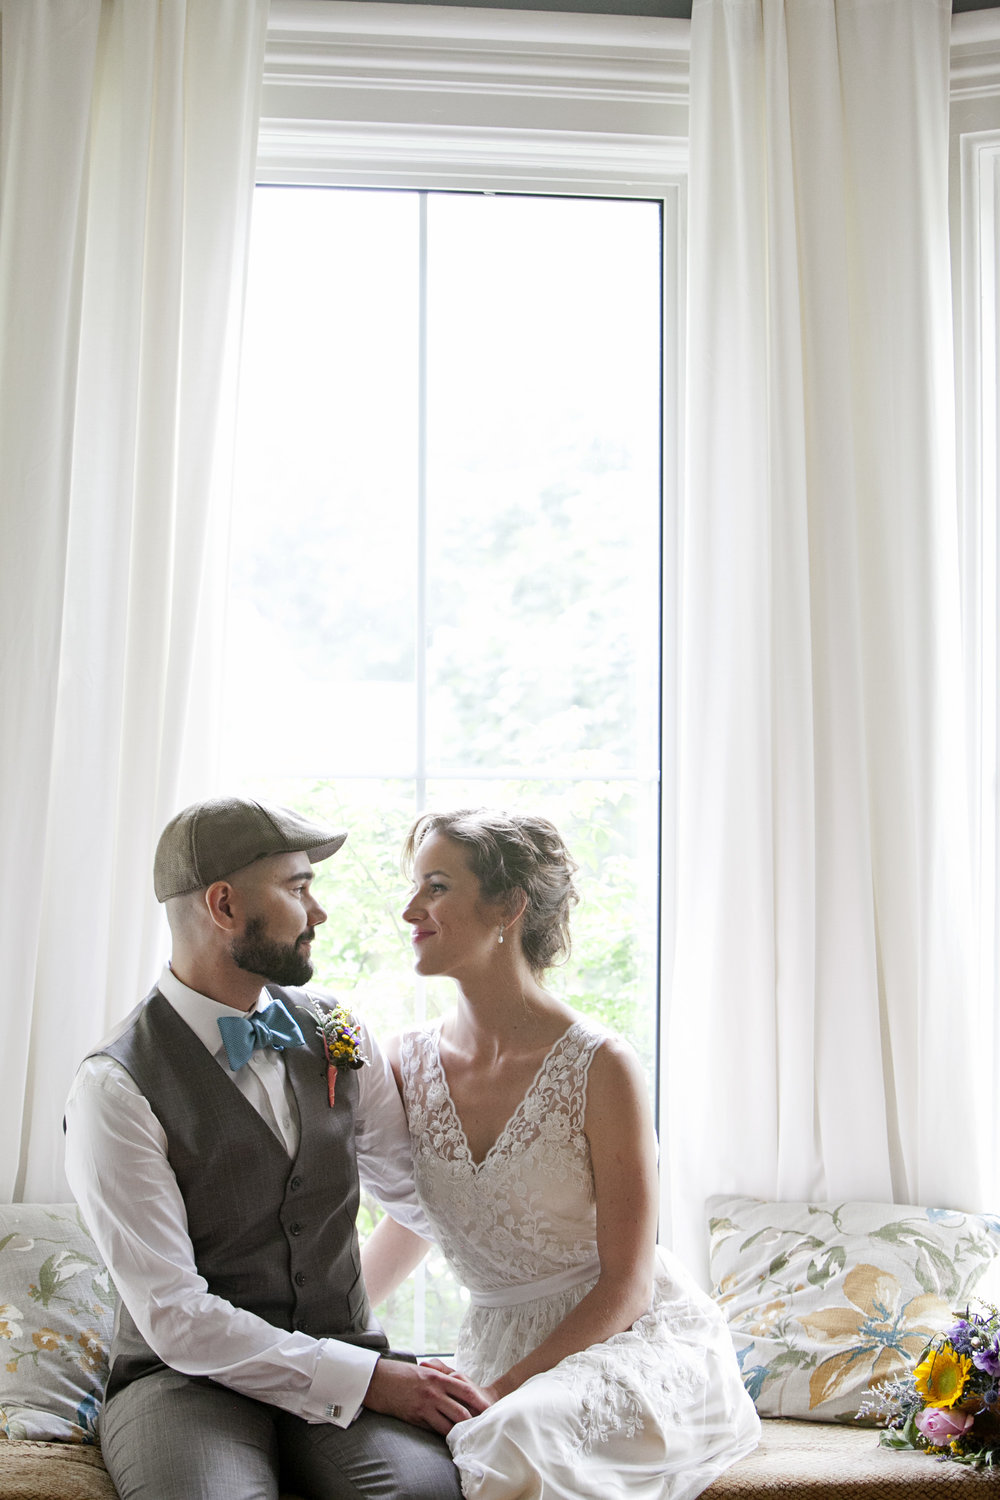 Bride and groom photos in Ontario farm house